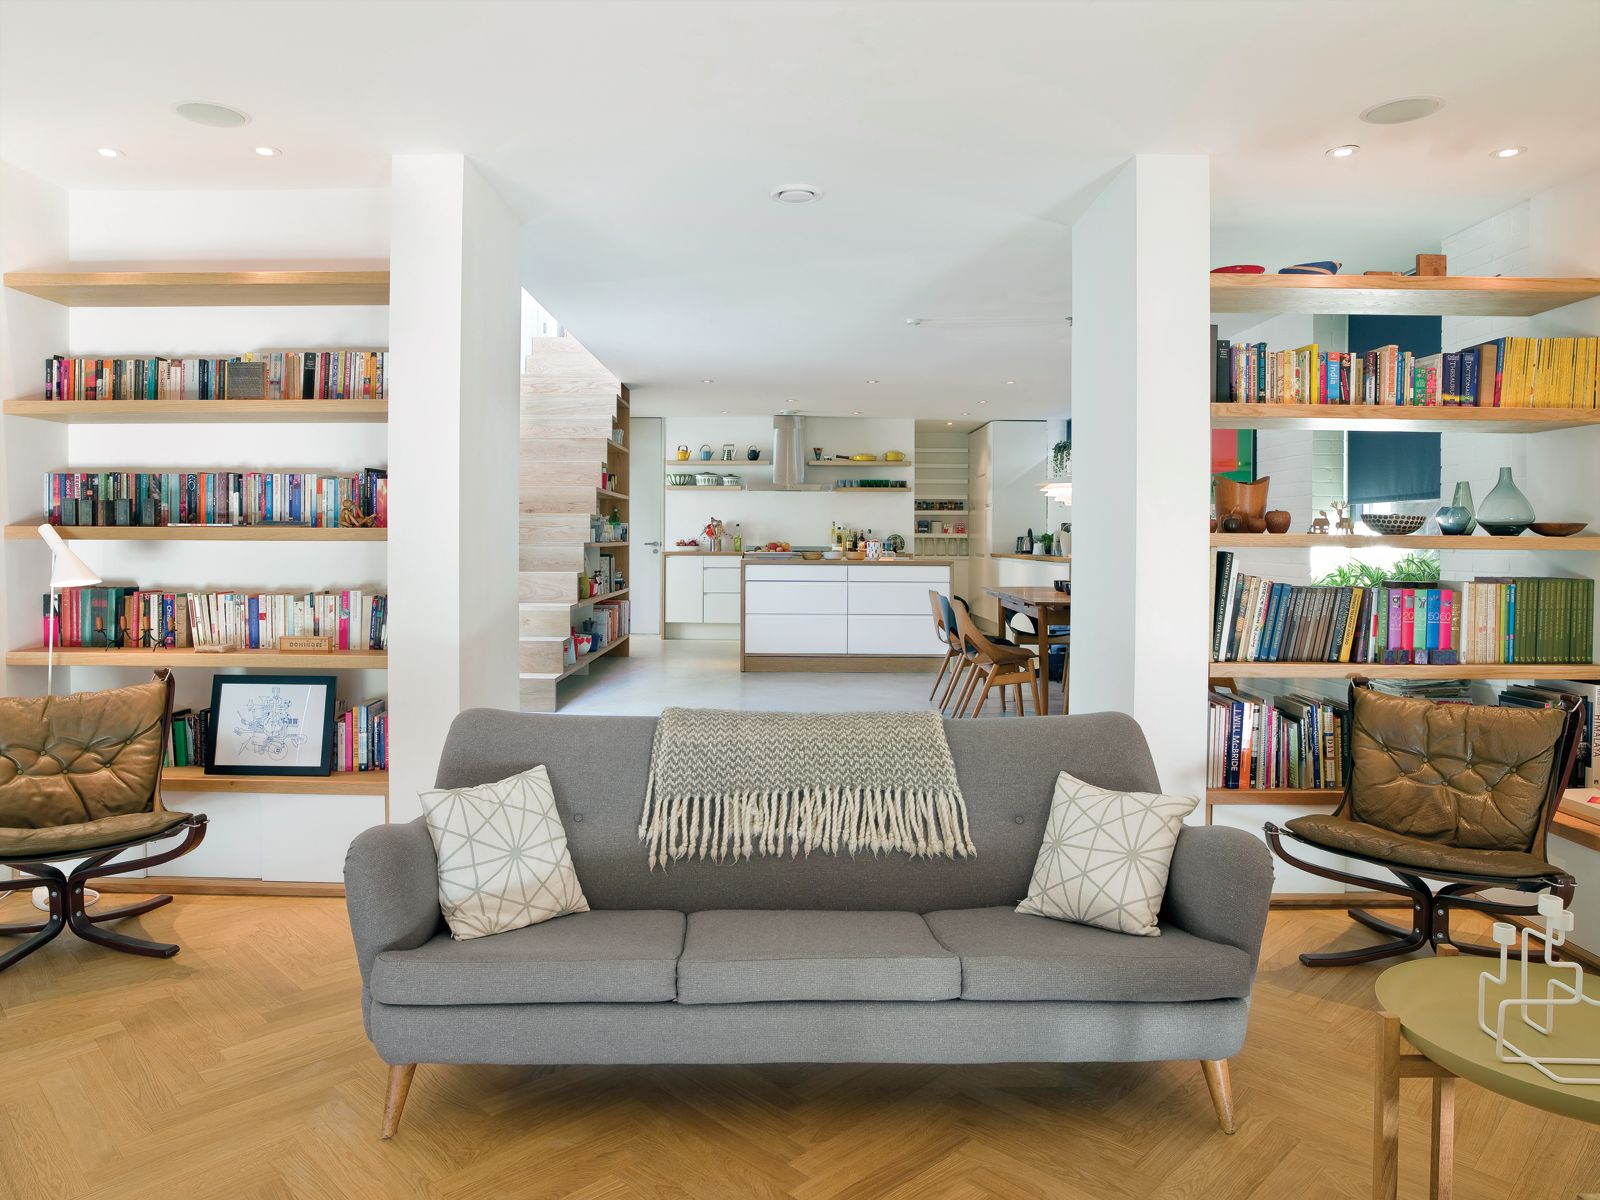 See through shelving for between kitchen and living.. Knoll sofa and on open kitchen with sunken living room, open-concept room ideas, open kitchen cabinets with glass, open kitchen family room, open kitchen layouts, open kitchen cabinets country kitchen, kitchen and living room divider ideas, open contemporary kitchen design, kitchen room design ideas, open kitchen shelving country living, pretty family room ideas, open kitchen floor, open kitchen into living room, open load bearing wall kitchen, open kitchen living room combo, kitchen family room ideas, farmhouse table kitchen design ideas, open kitchen by removing wall, open kitchen to living room, open kitchen plans,